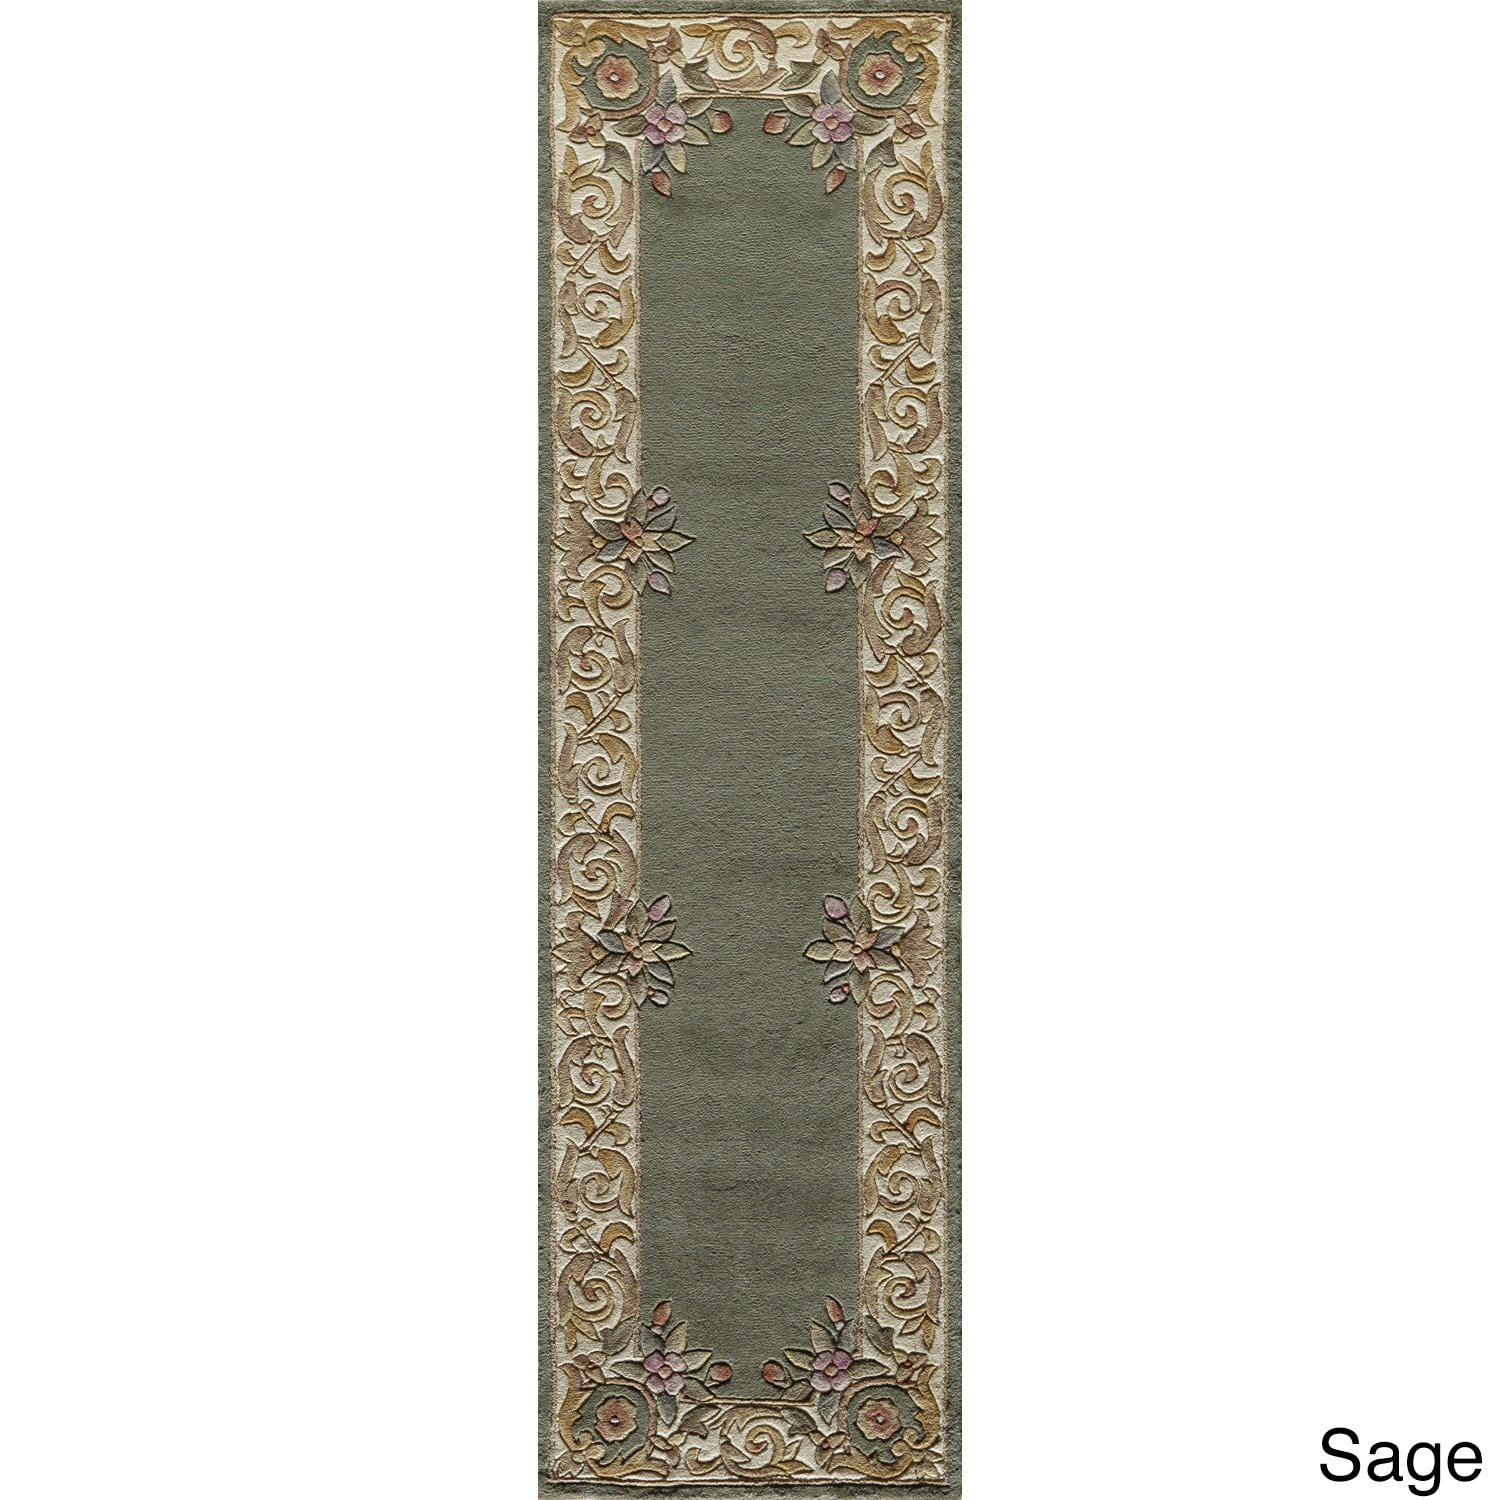 Aubusson Floral Border Hand-tufted Wool Area Rug (2'3 X 12